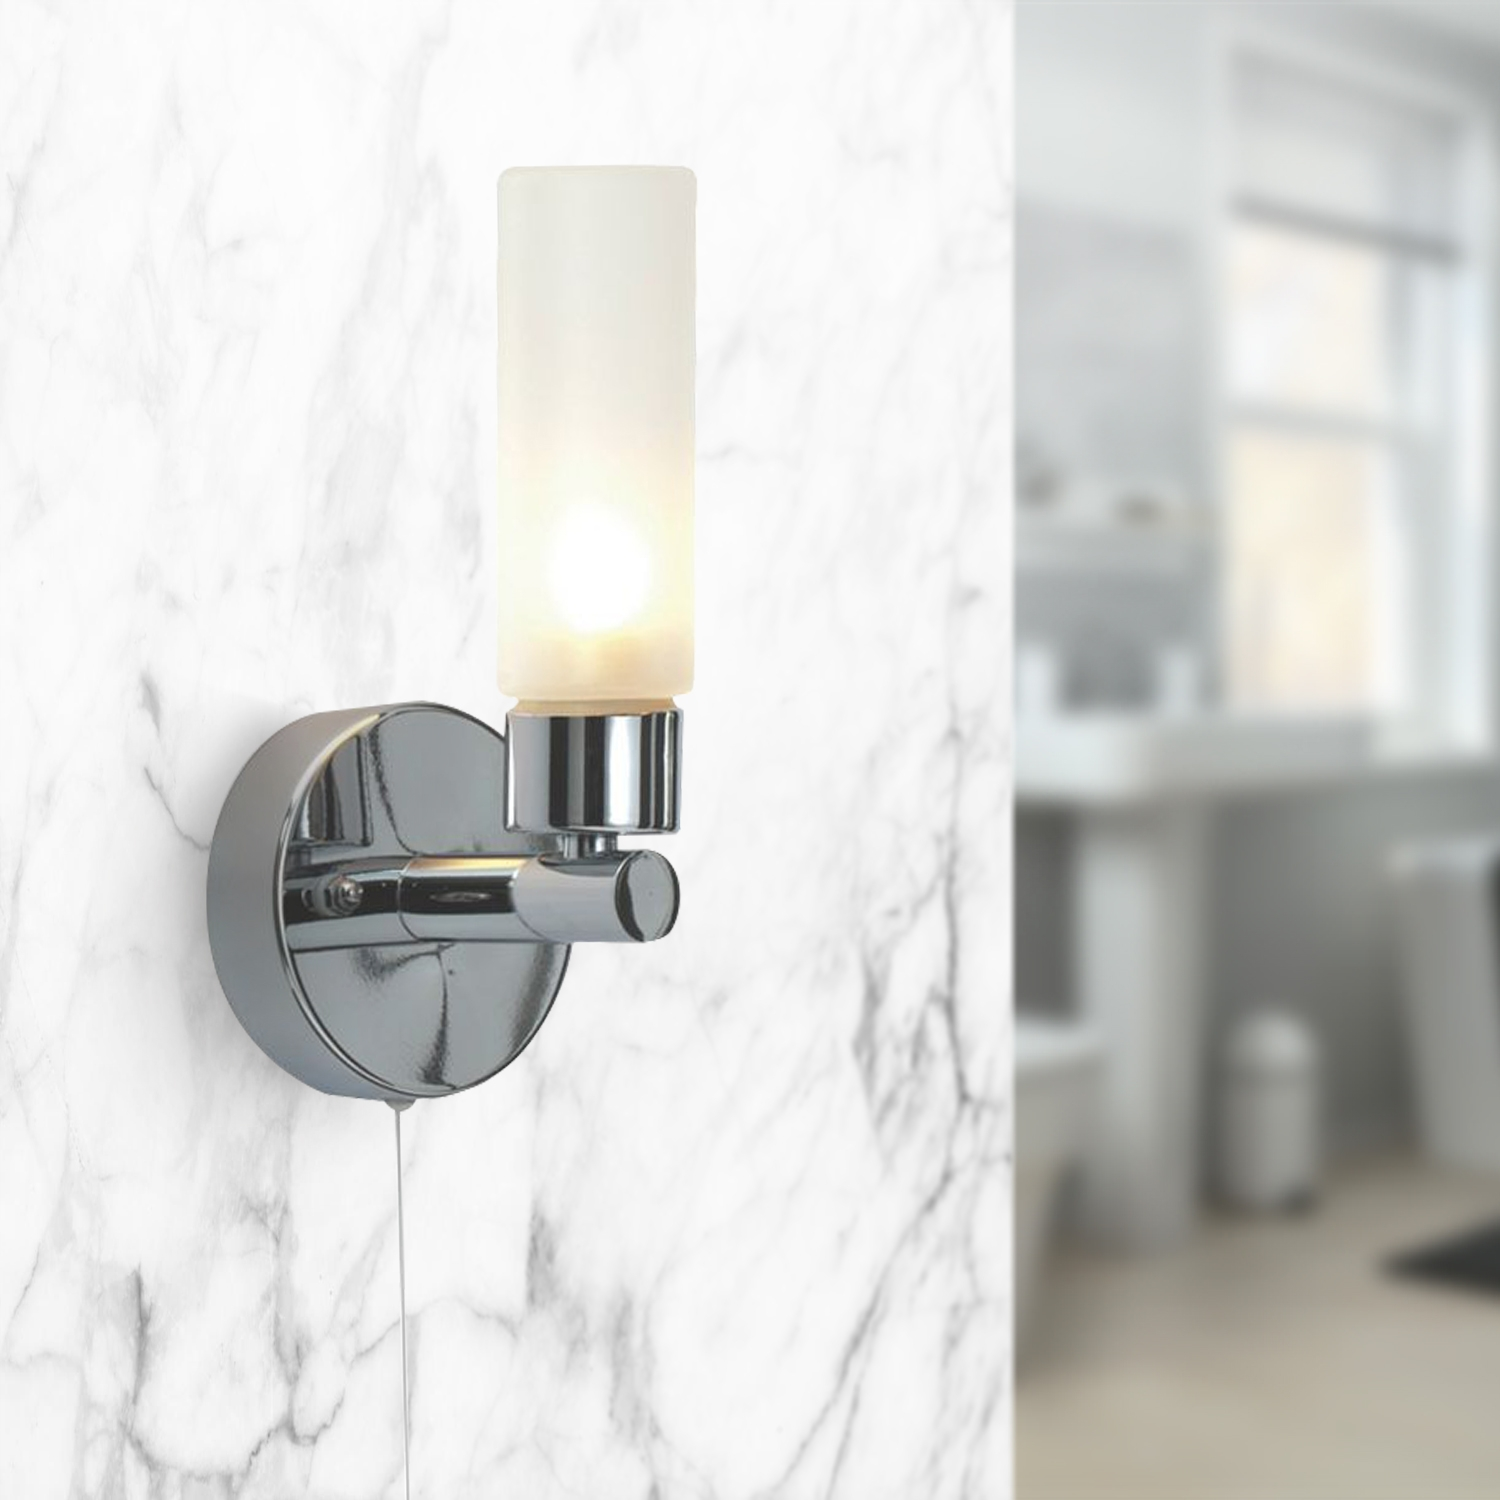 Modern Polished Chrome Glass Ip44 Bathroom Wall Light With Pull Cord Switch 710560388677 Ebay